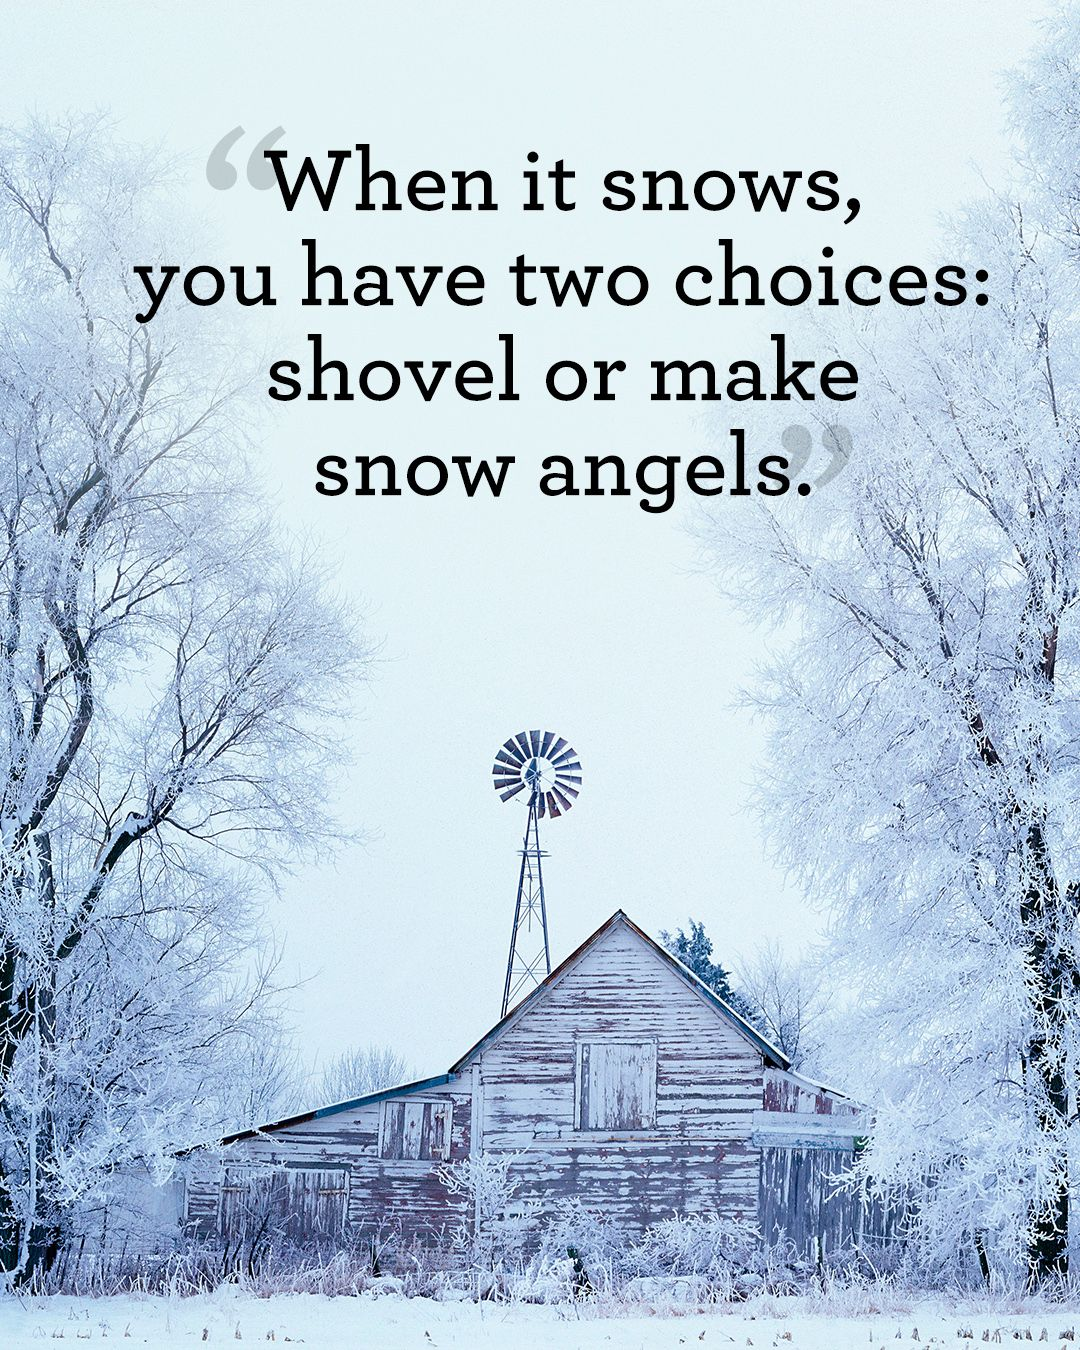 Winter Quotes: 40 Best Winter Quotes To Help You See The Beauty Of Every